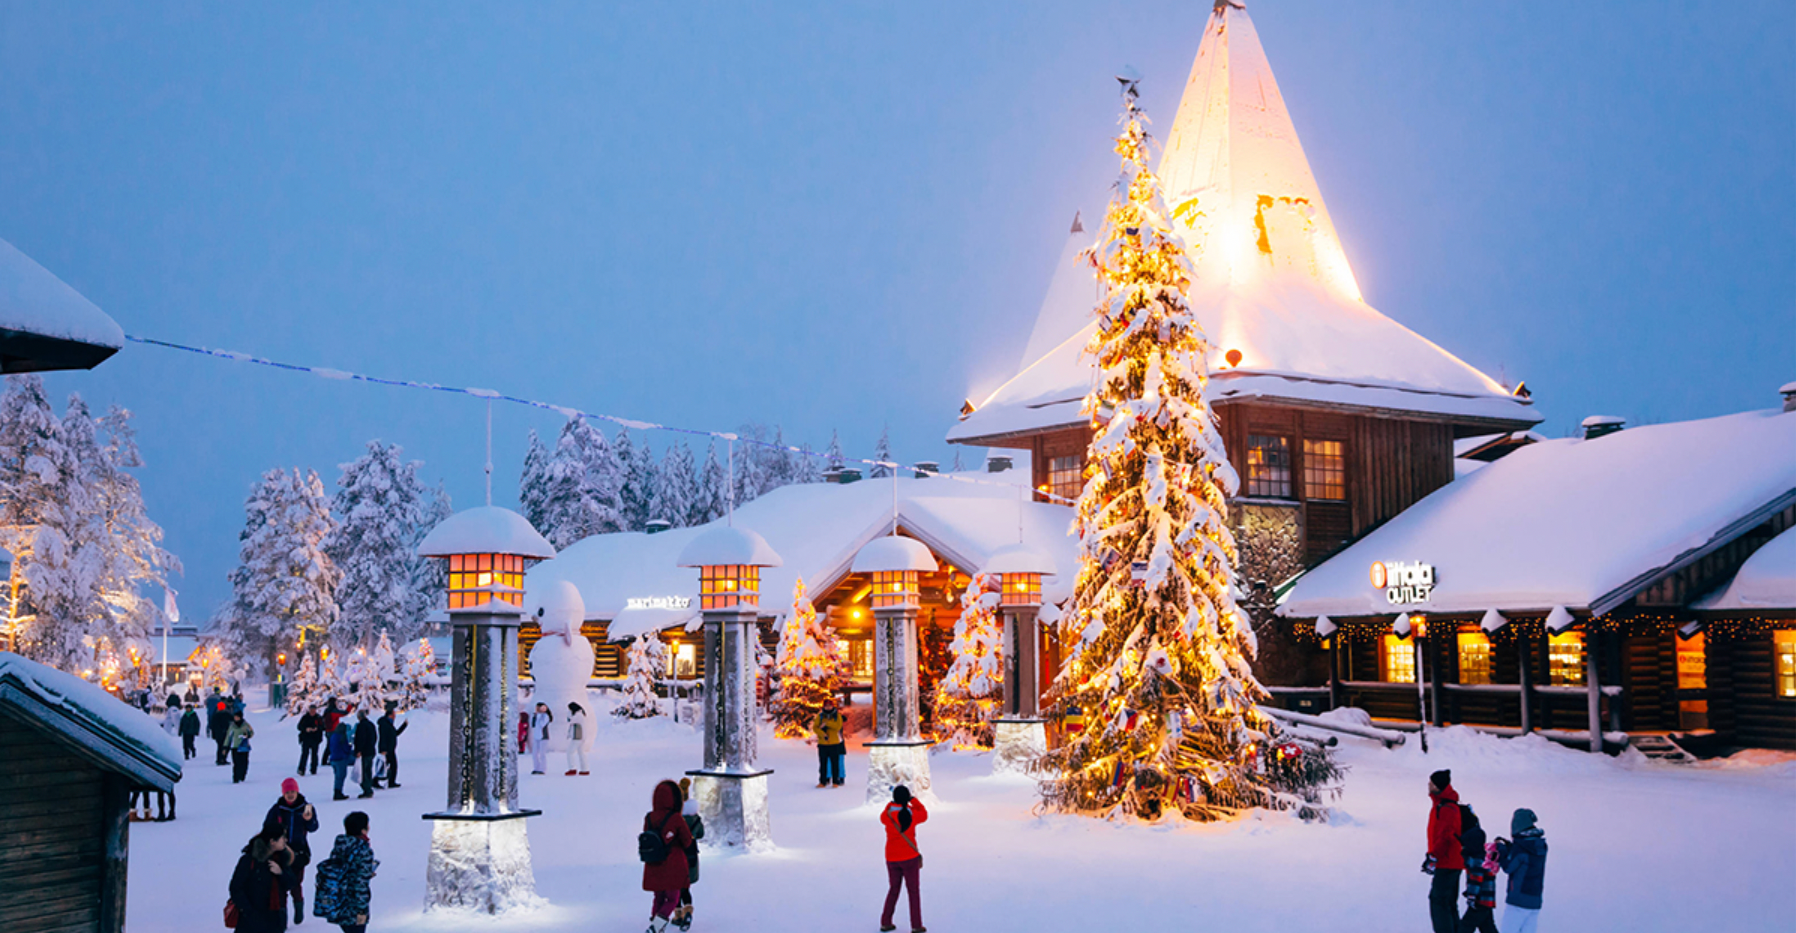 Go North to Finland to Find Santa, Ride in a Reindeer Sleigh and see the Aurora Borealis